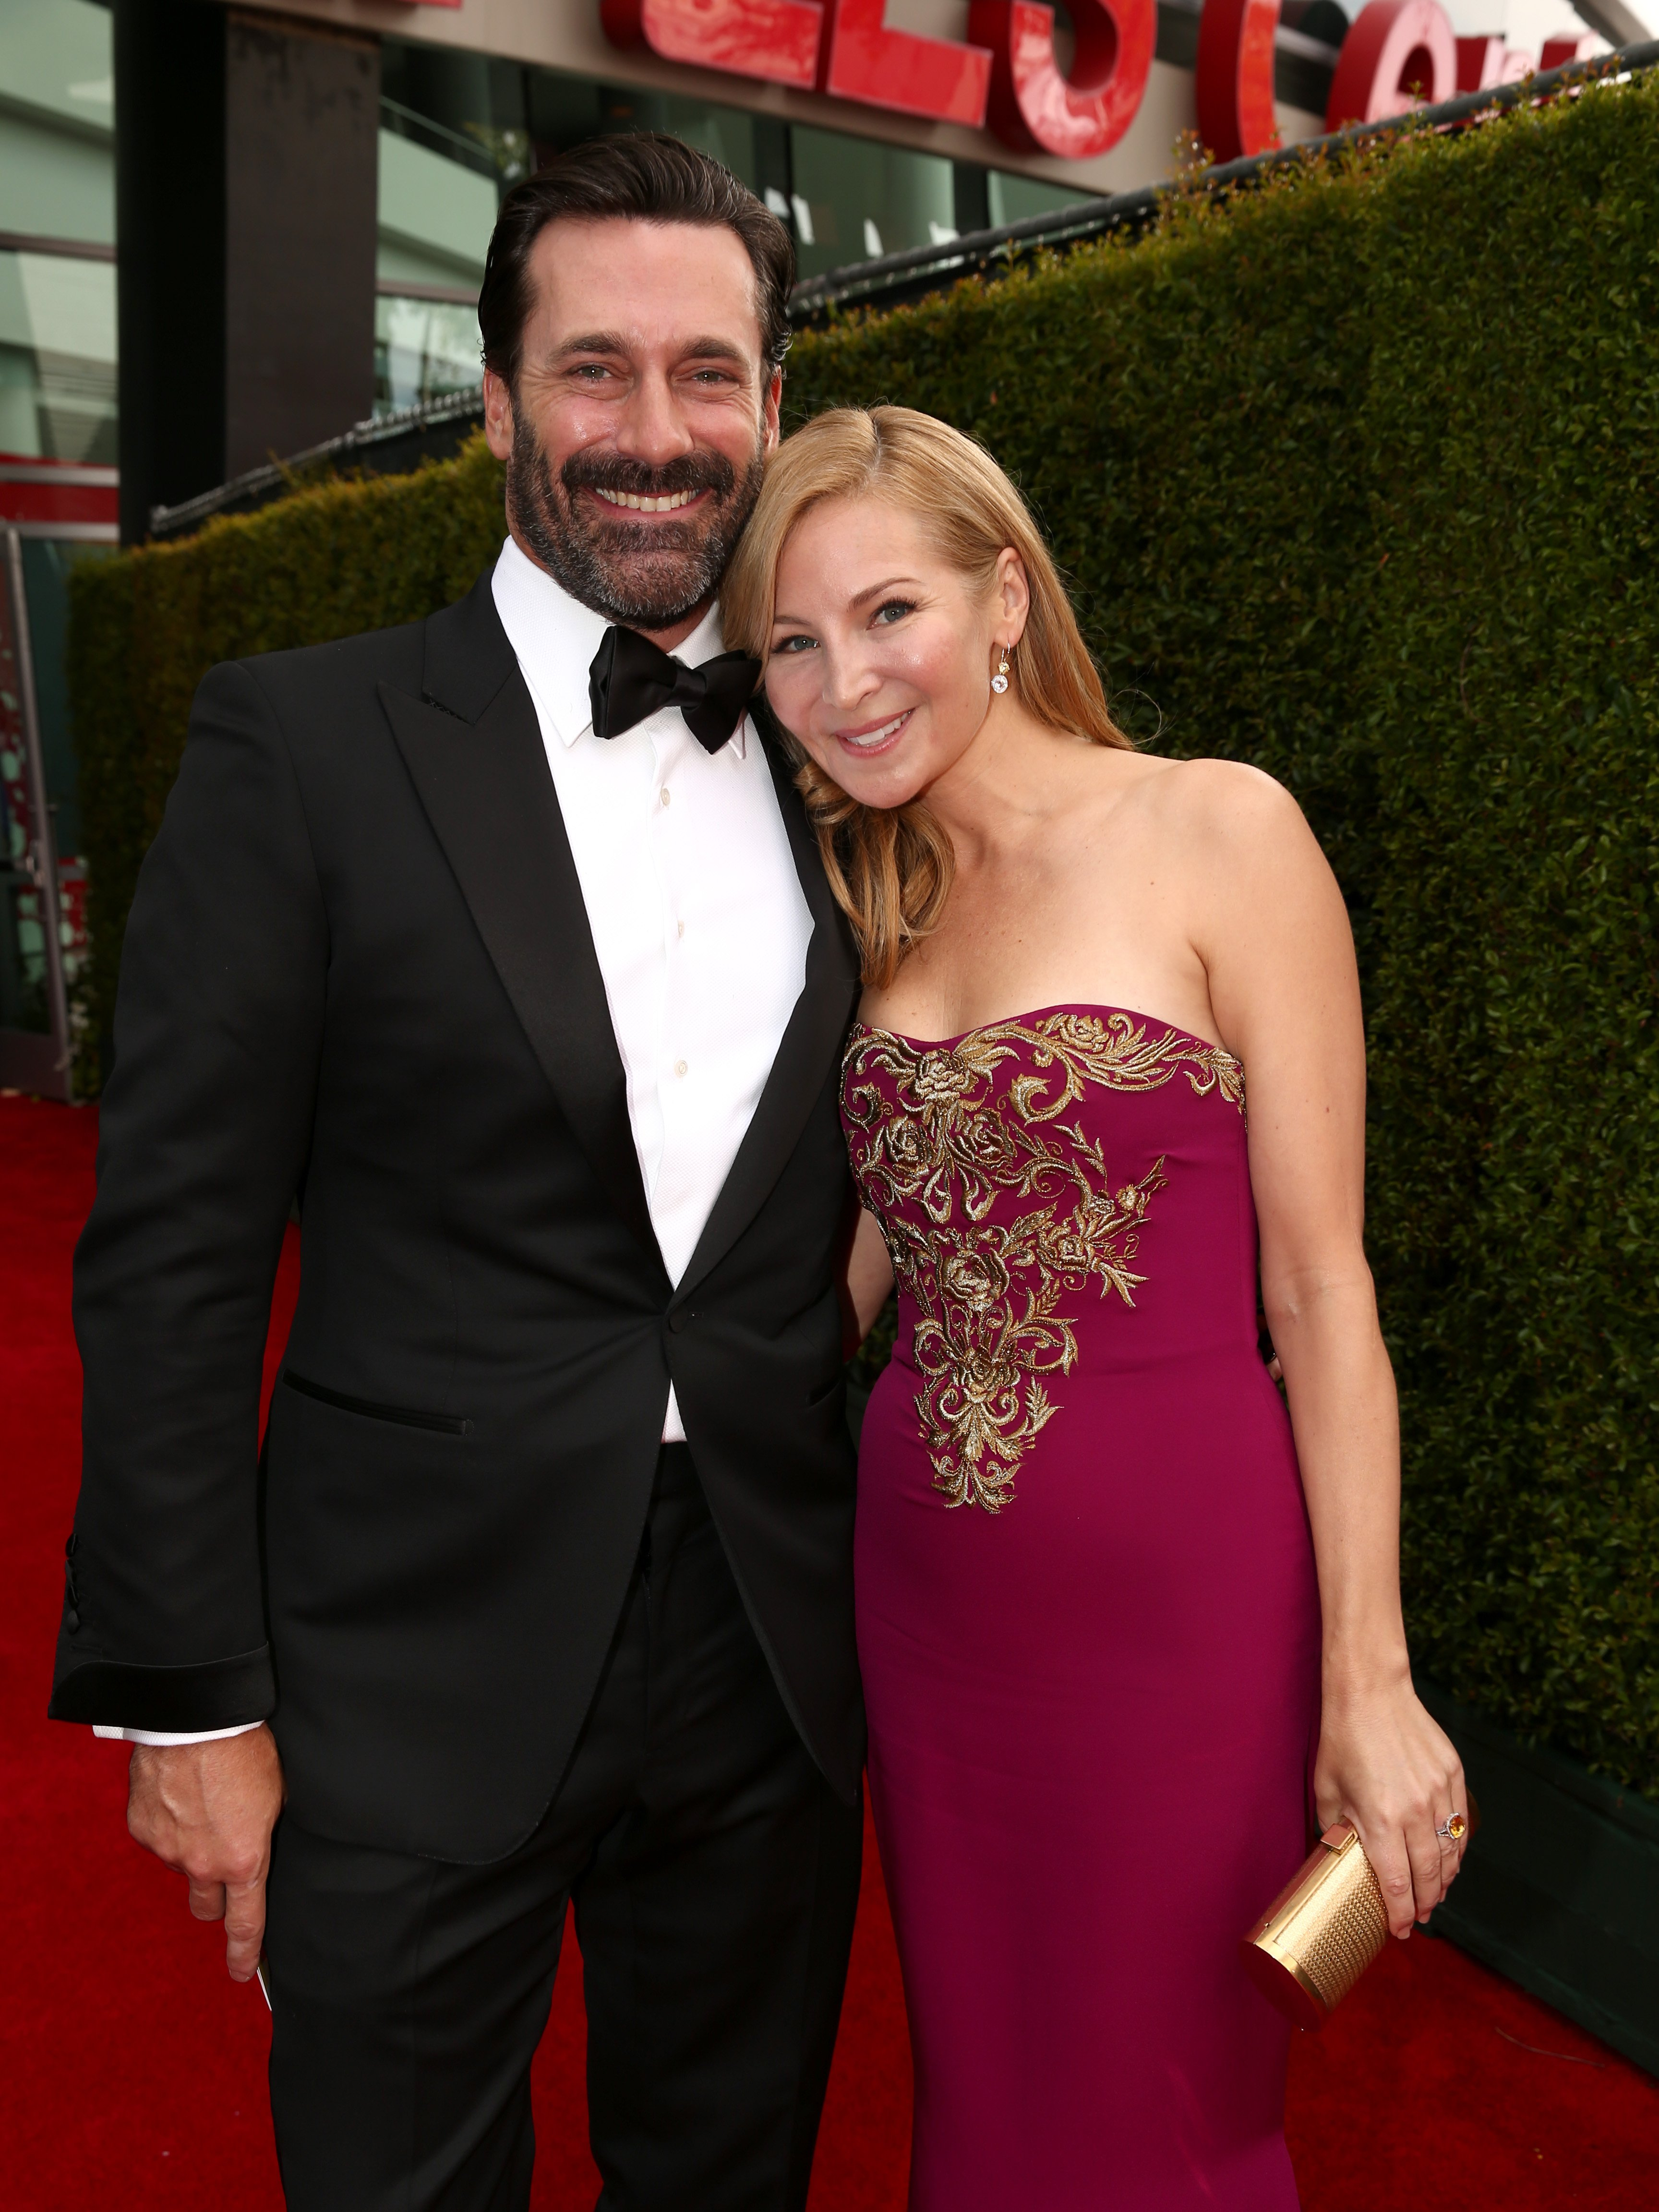 Jon Hamm and Jennifer Westfeldt arrive to the 66th Annual Primetime Emmy Awards held at the Nokia Theater on August 25, 2014.